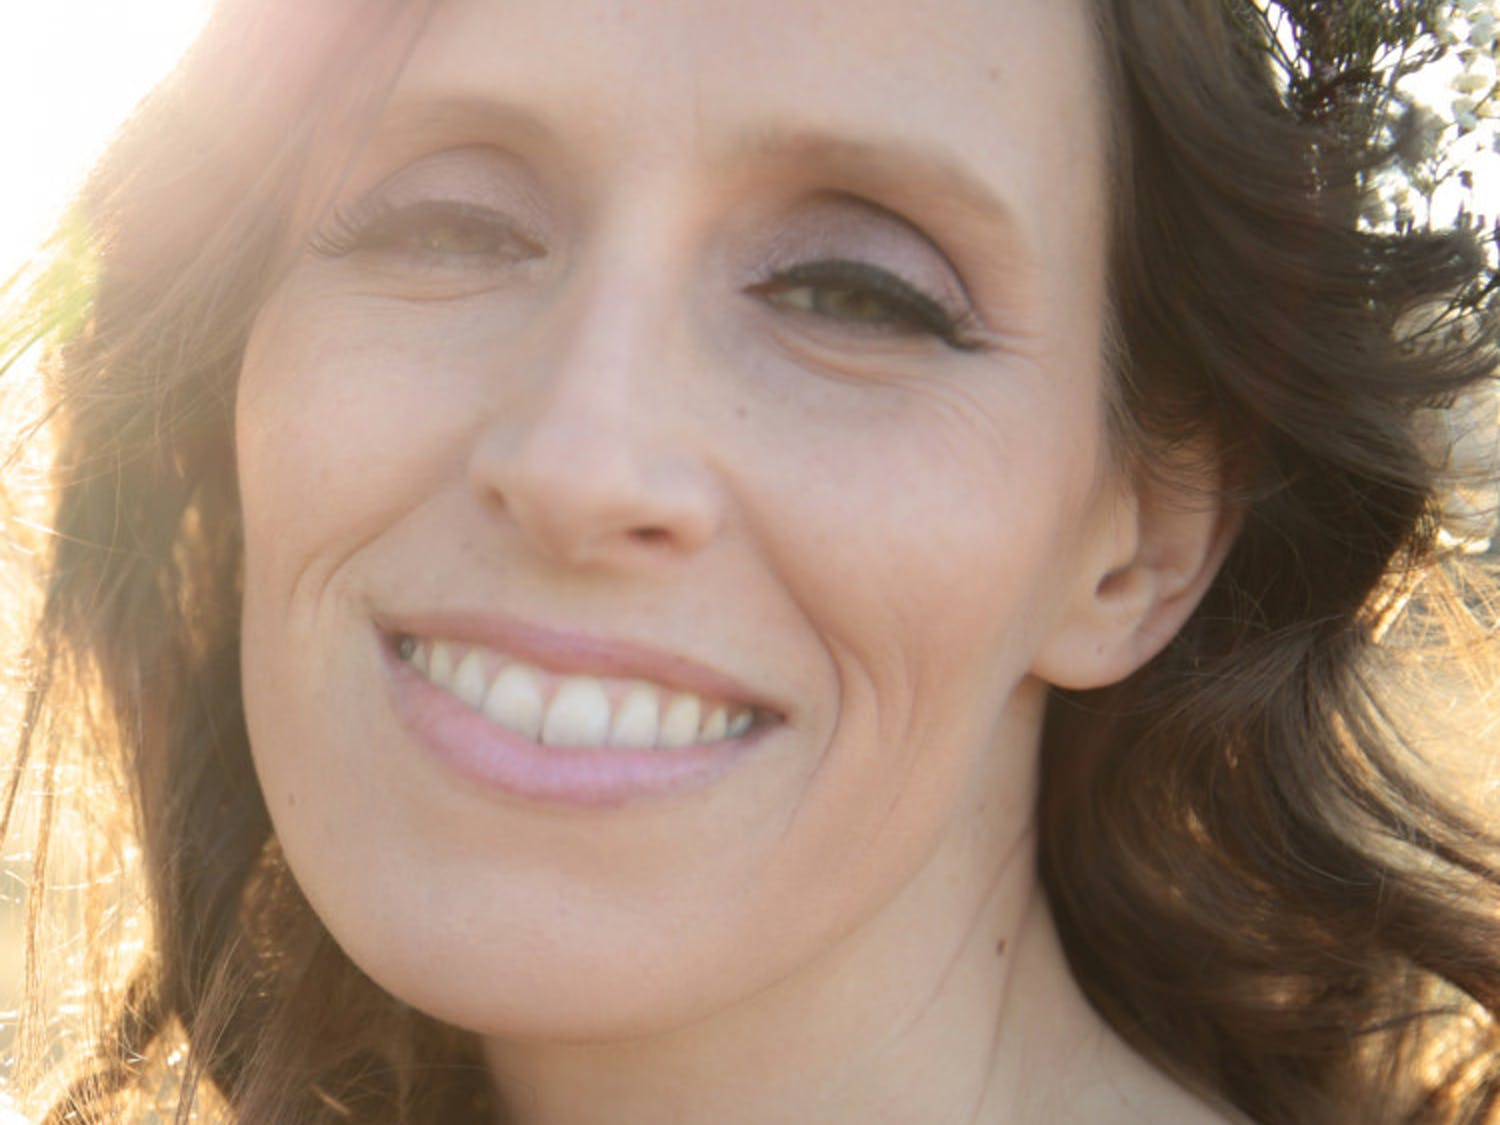 With a relaxing sound and an ethereal voice to match, Edie Carey will bring her talents to Heartwood Soundstage this week.